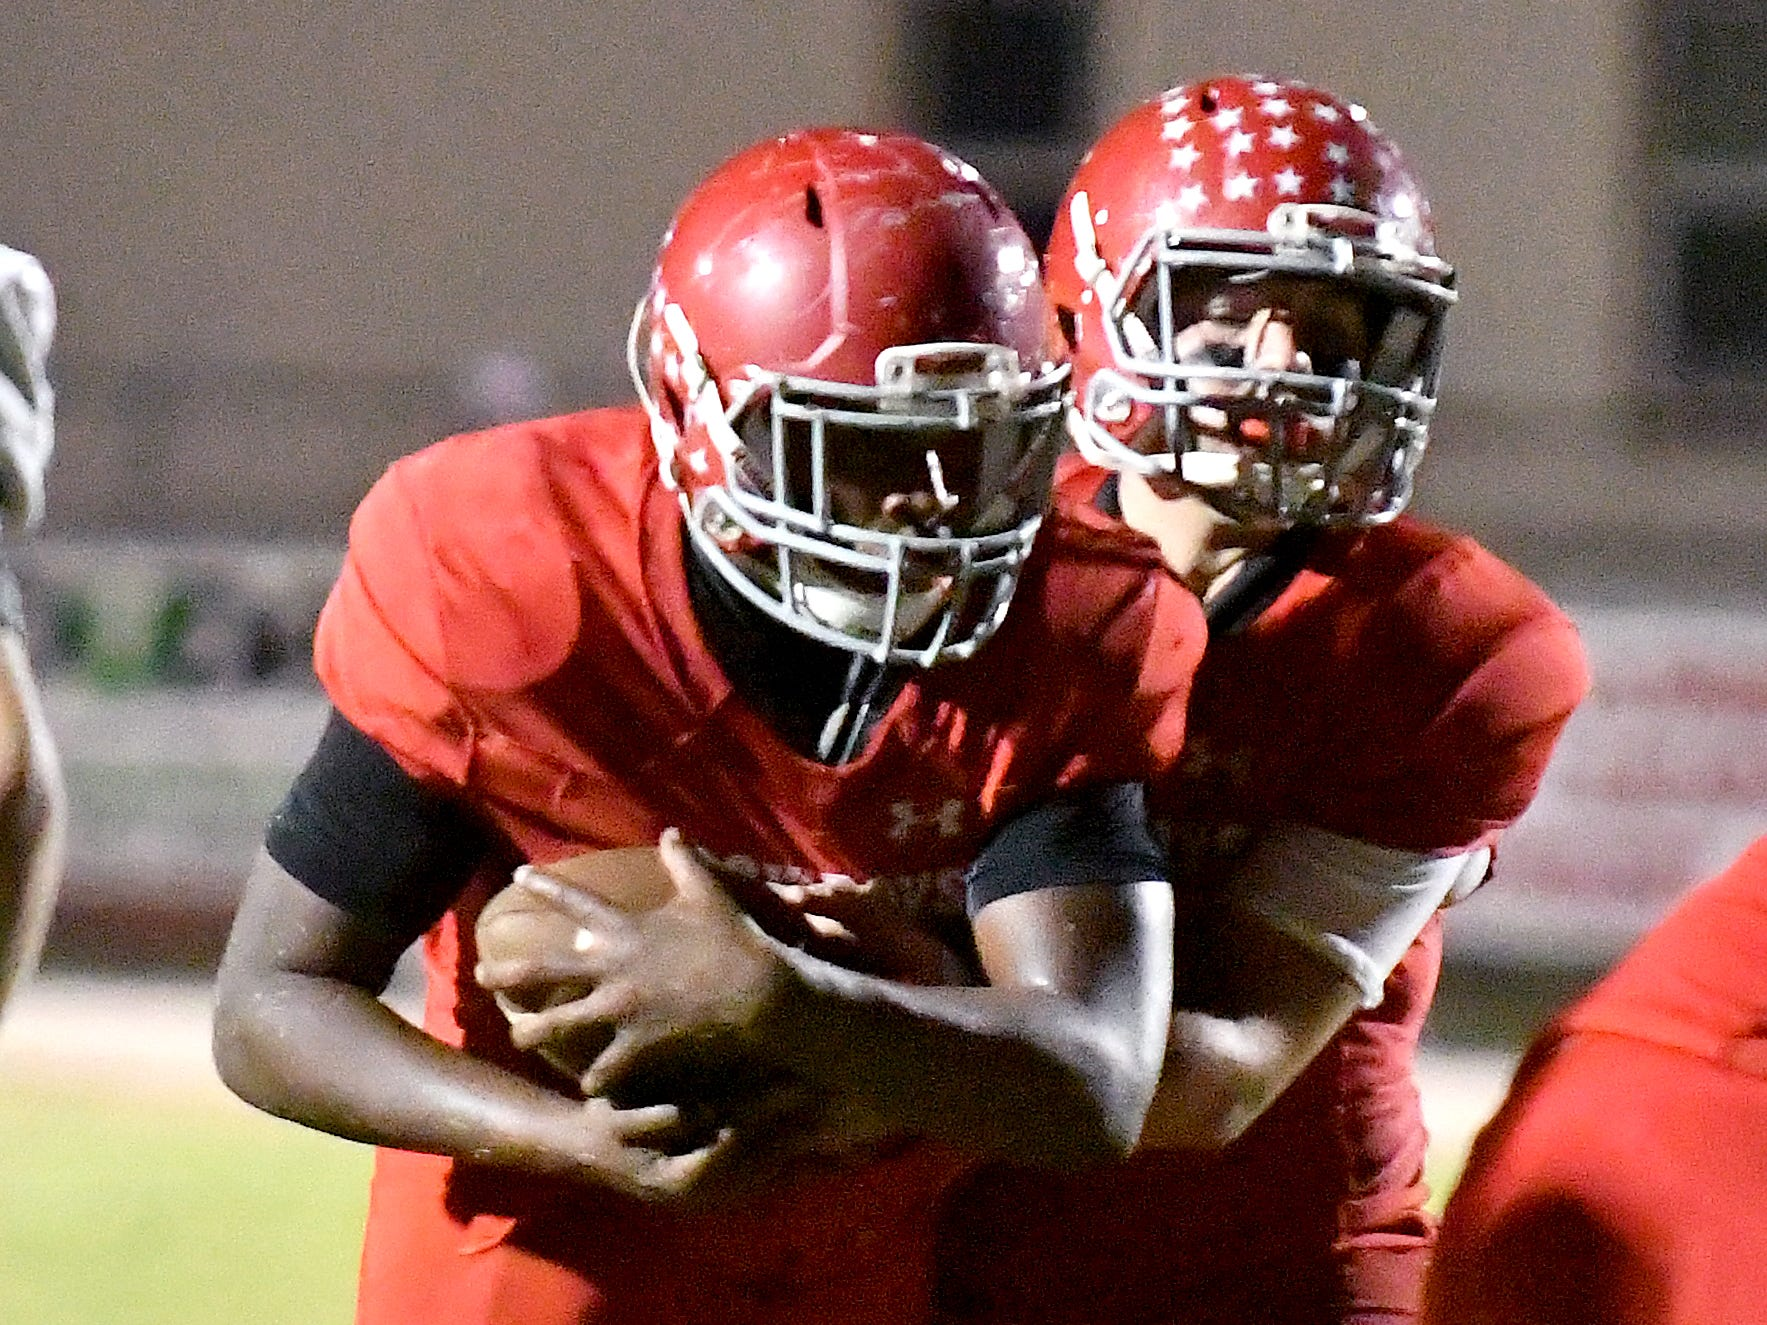 LaBelle quarterback Bryce Hall hands of to Maynard Blackmon during LaBelle's win over Lake Placid 14-13 in a Class 4A regional quarterfinal on Friday.